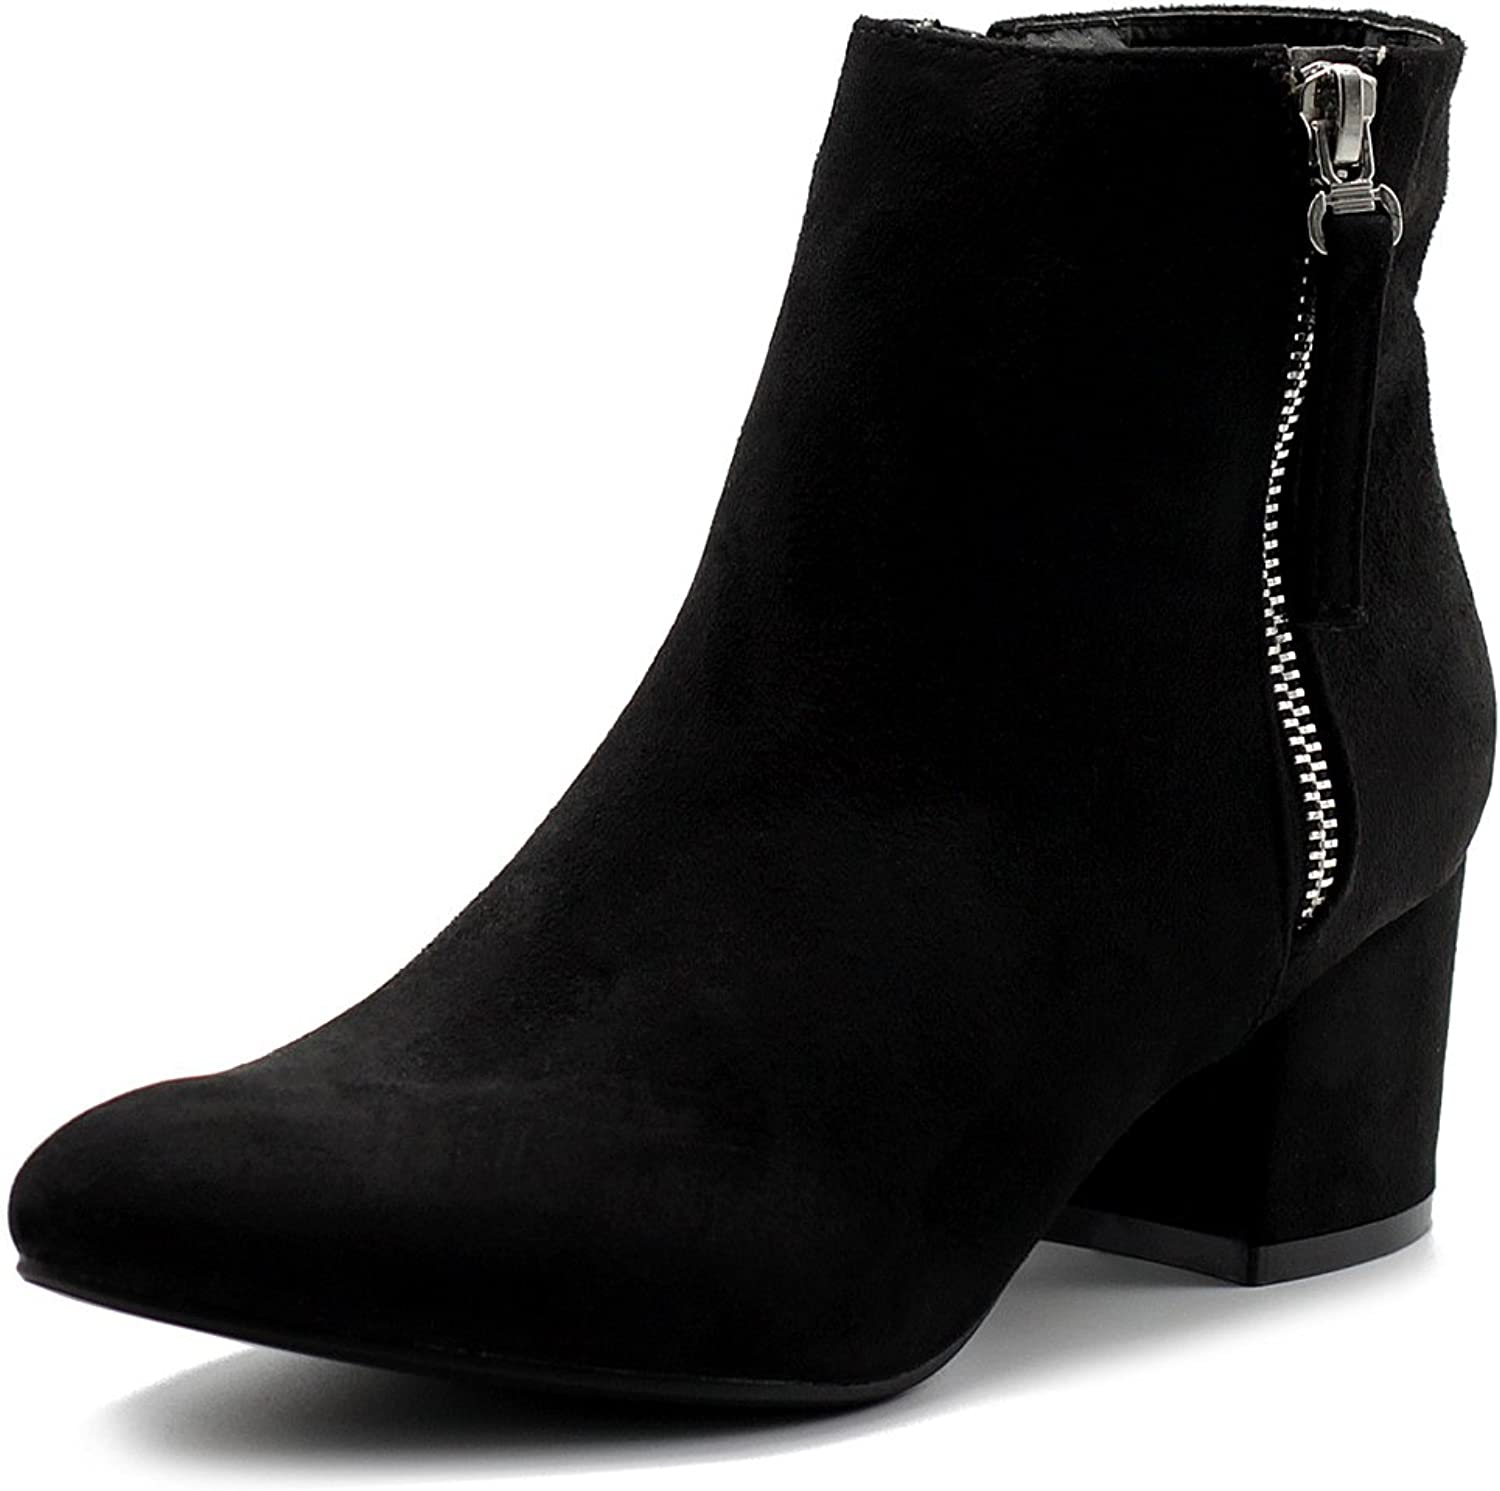 Ollio Women's shoes Faux Suede Chunky Heel Zip Up Ankle Boots